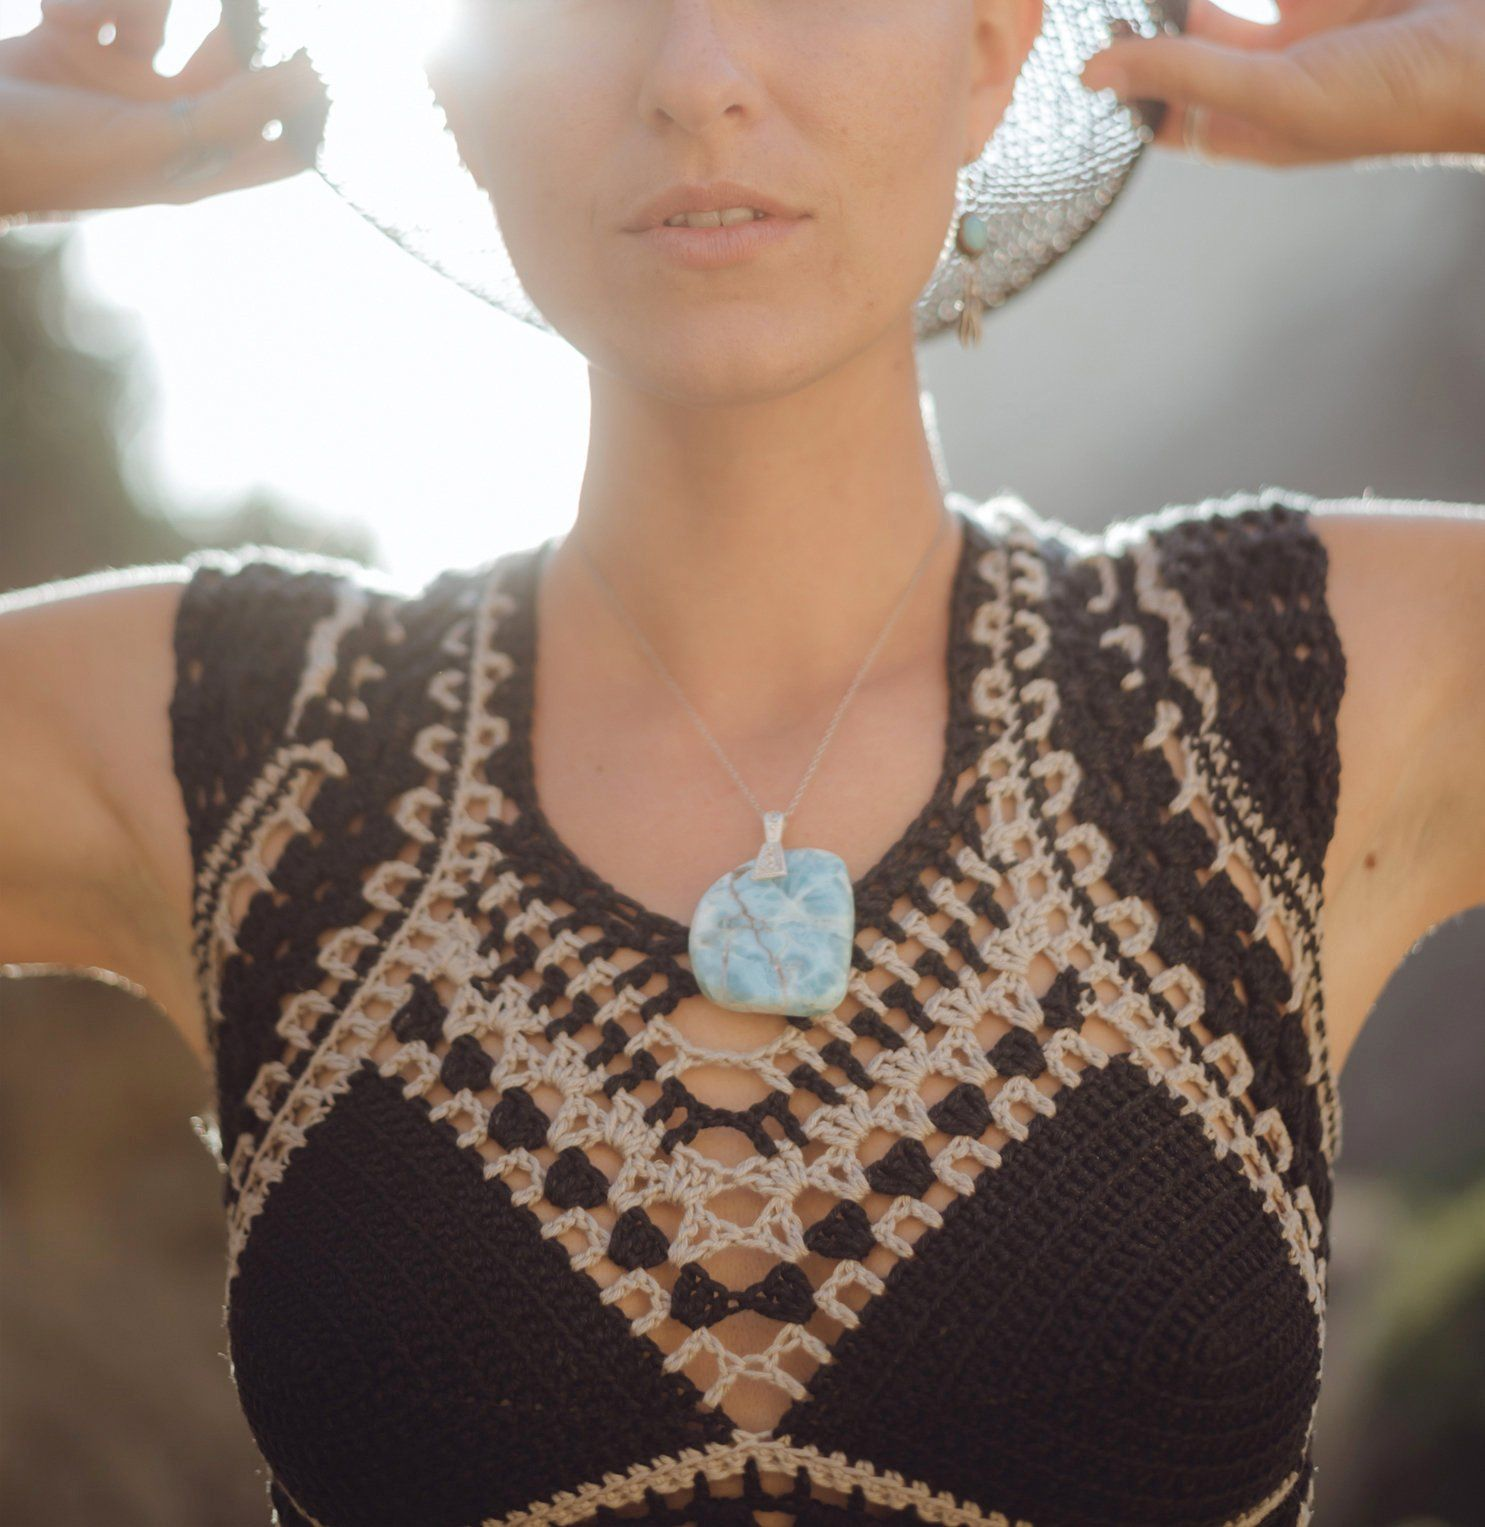 Mystic Warrior Top. Southwest Fashion. Open Back. Bohemian. Rock n' Roll. Vintage Rustic. Desert Fas #fashiontag